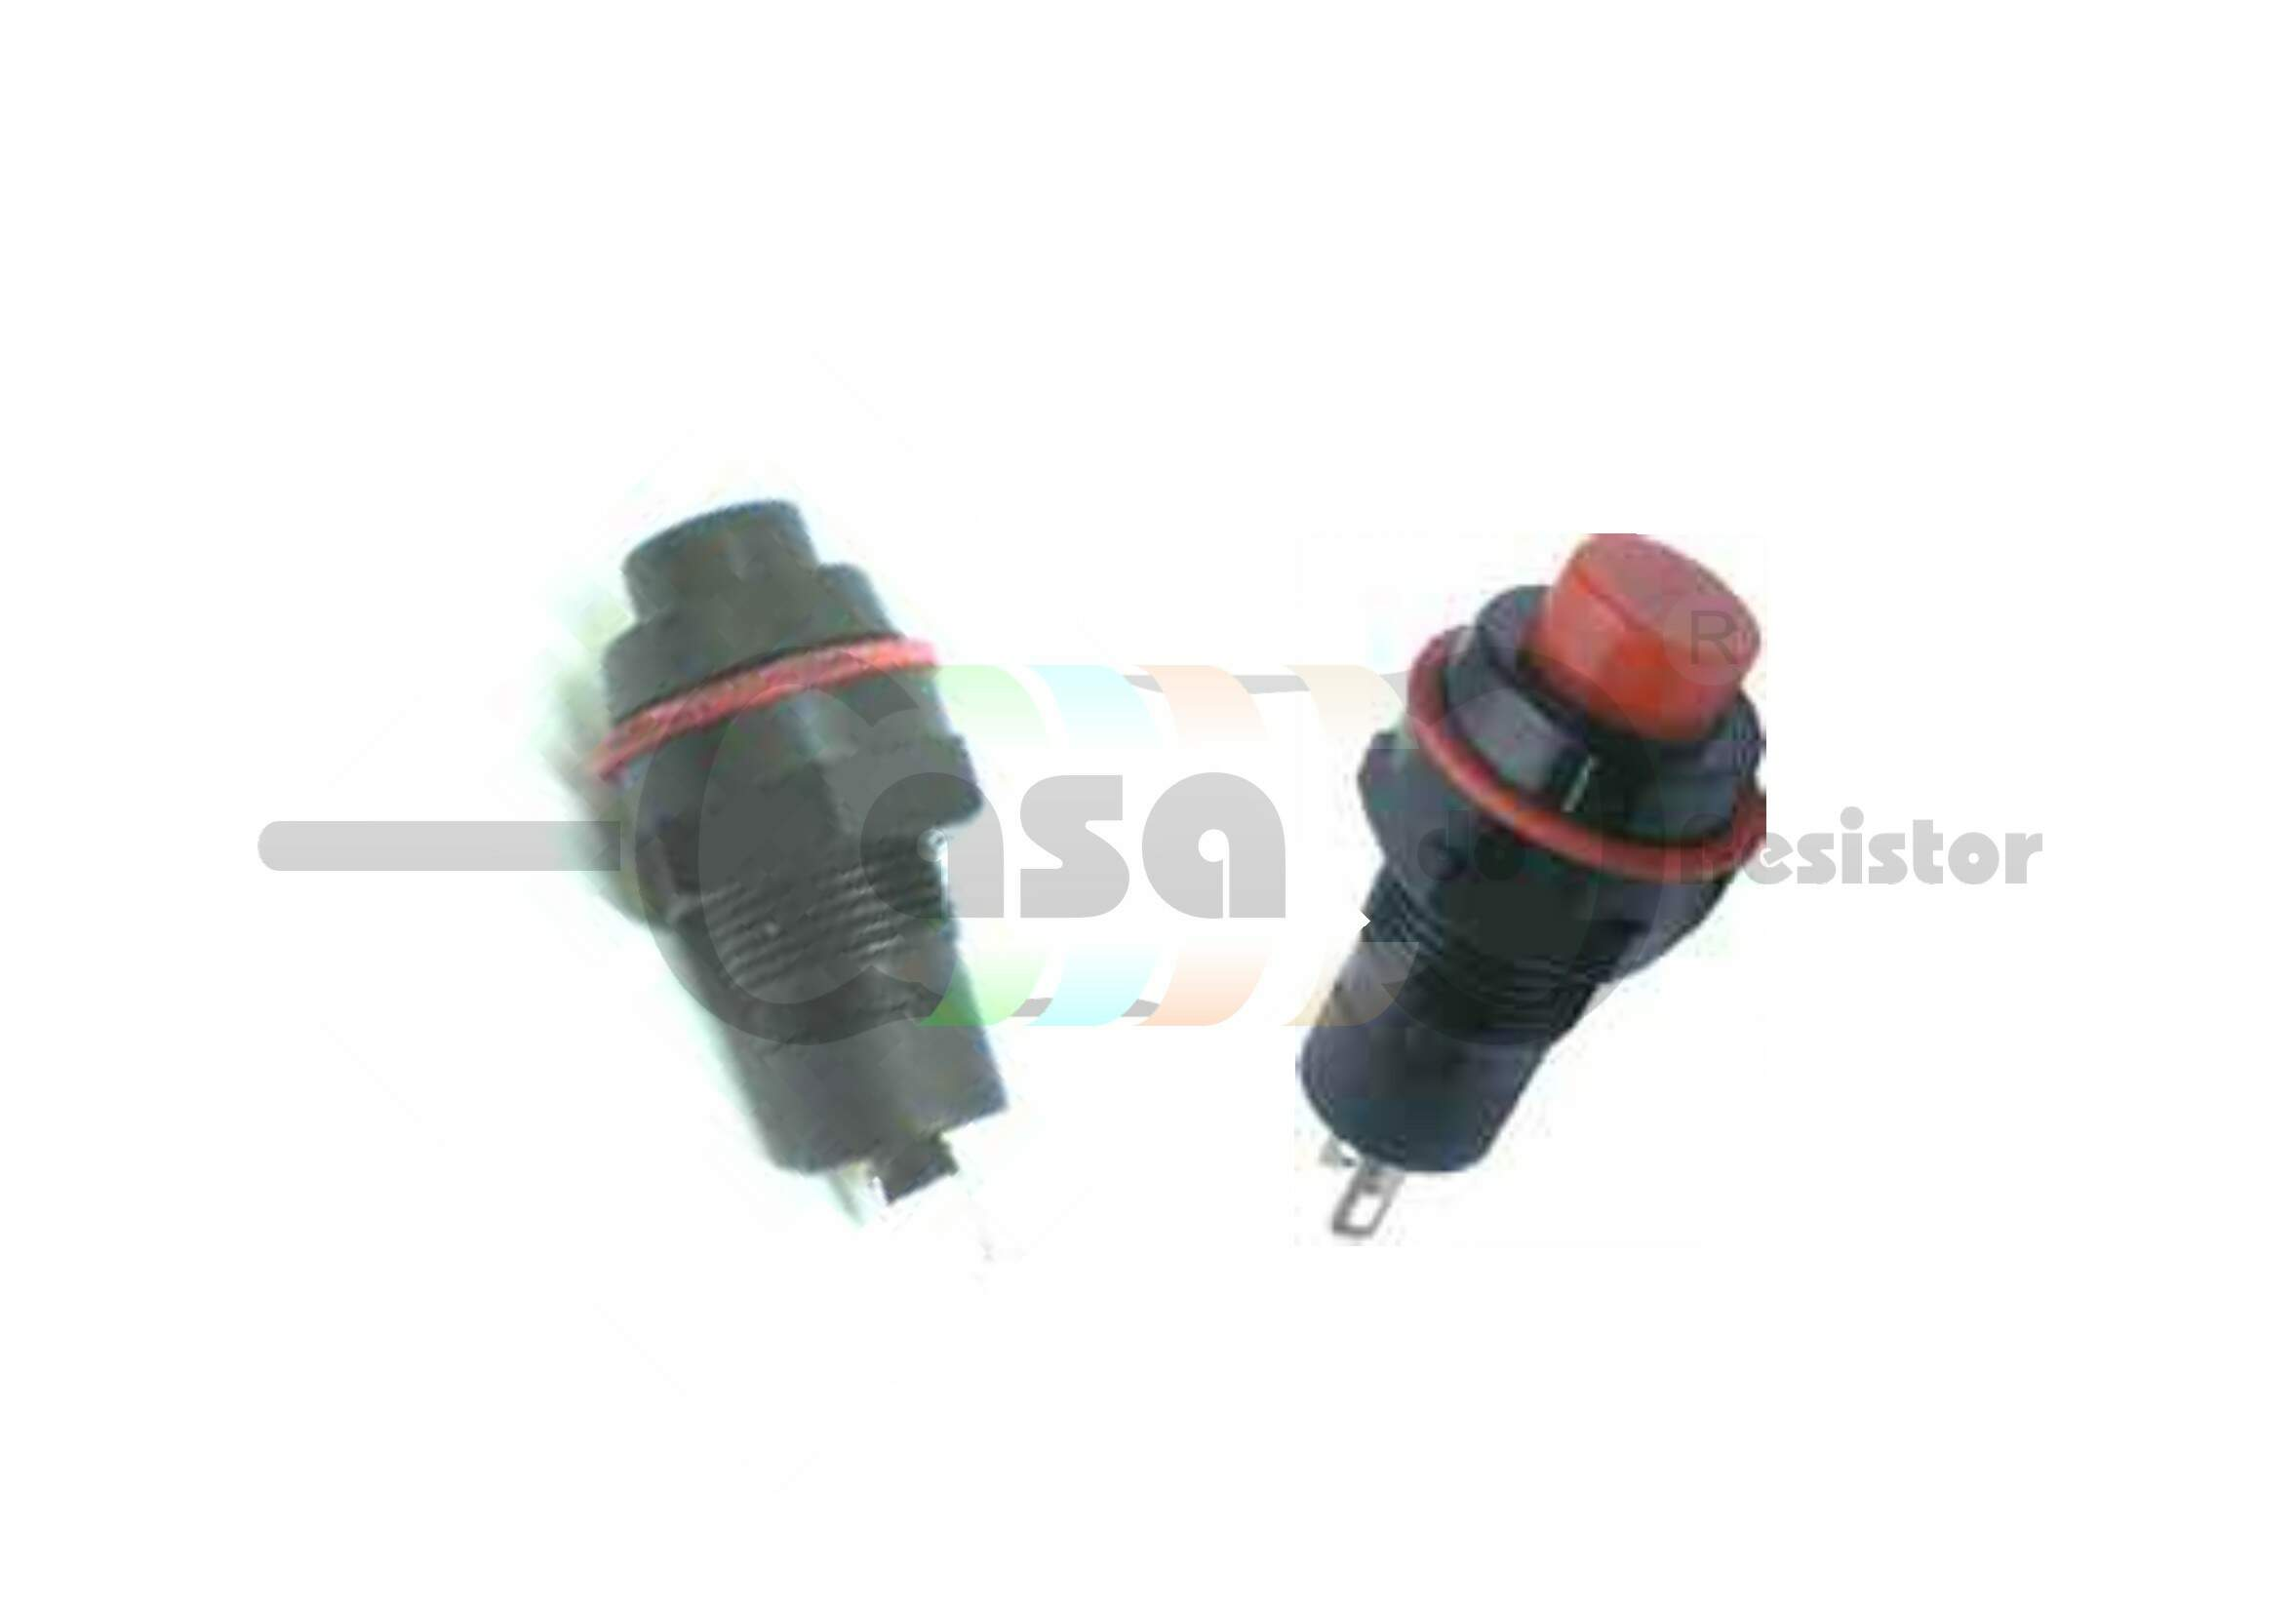 Chave push button DS-213 2T sem trava Vermelha